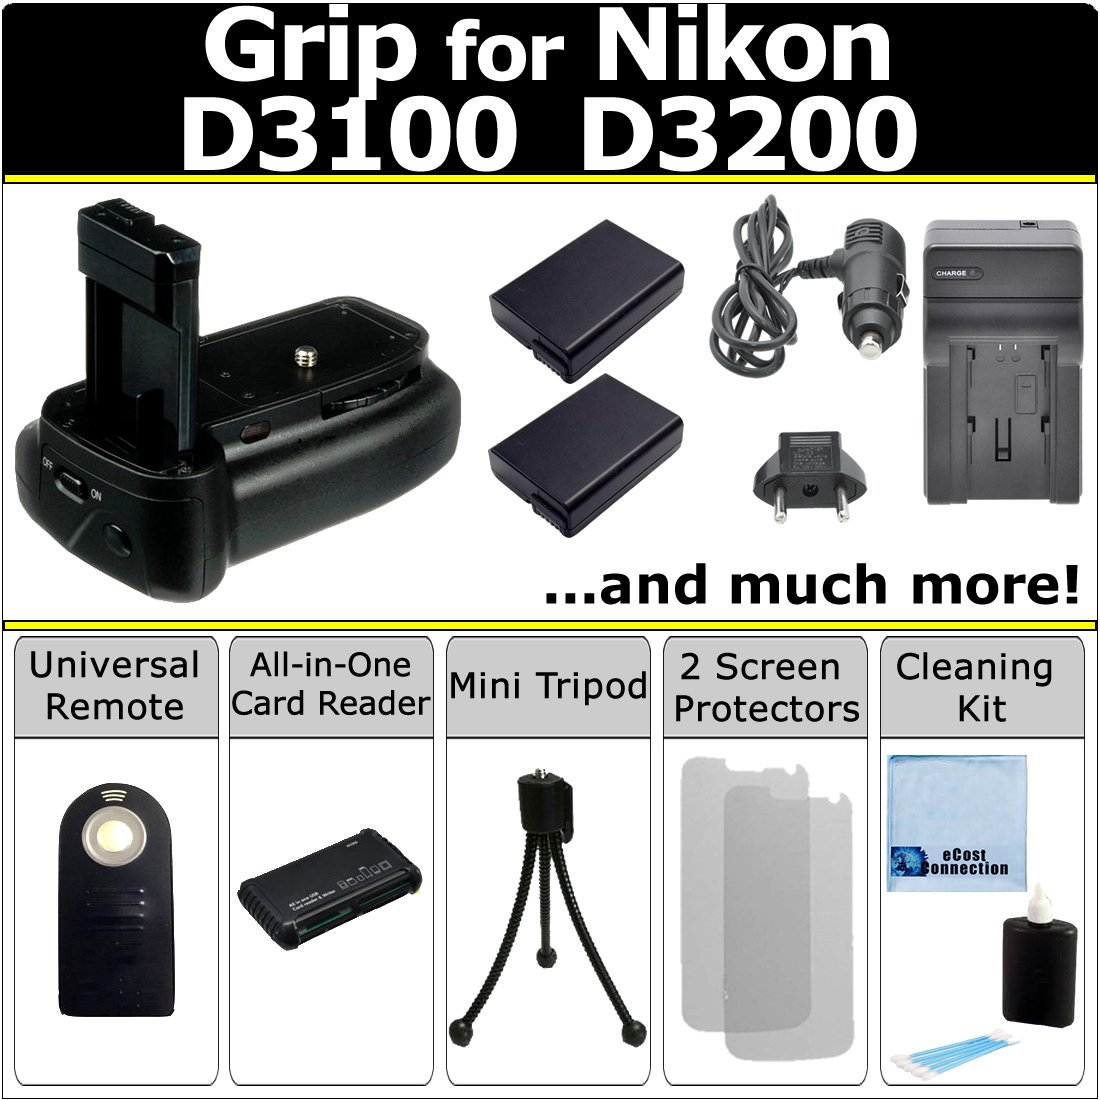 Professional Vertical D3100 D3200 Multi-Purpose Battery Grip for Nikon D3100 D3200 DSLR Camera + 2 EN-EL14 Long Life Batteries + AC/DC Turbo Charger With Travel Adapter + Universal Wireless Remote + All-In-One Card Reader + Complete Deluxe Starter Kit (BG-N9 BGN9)